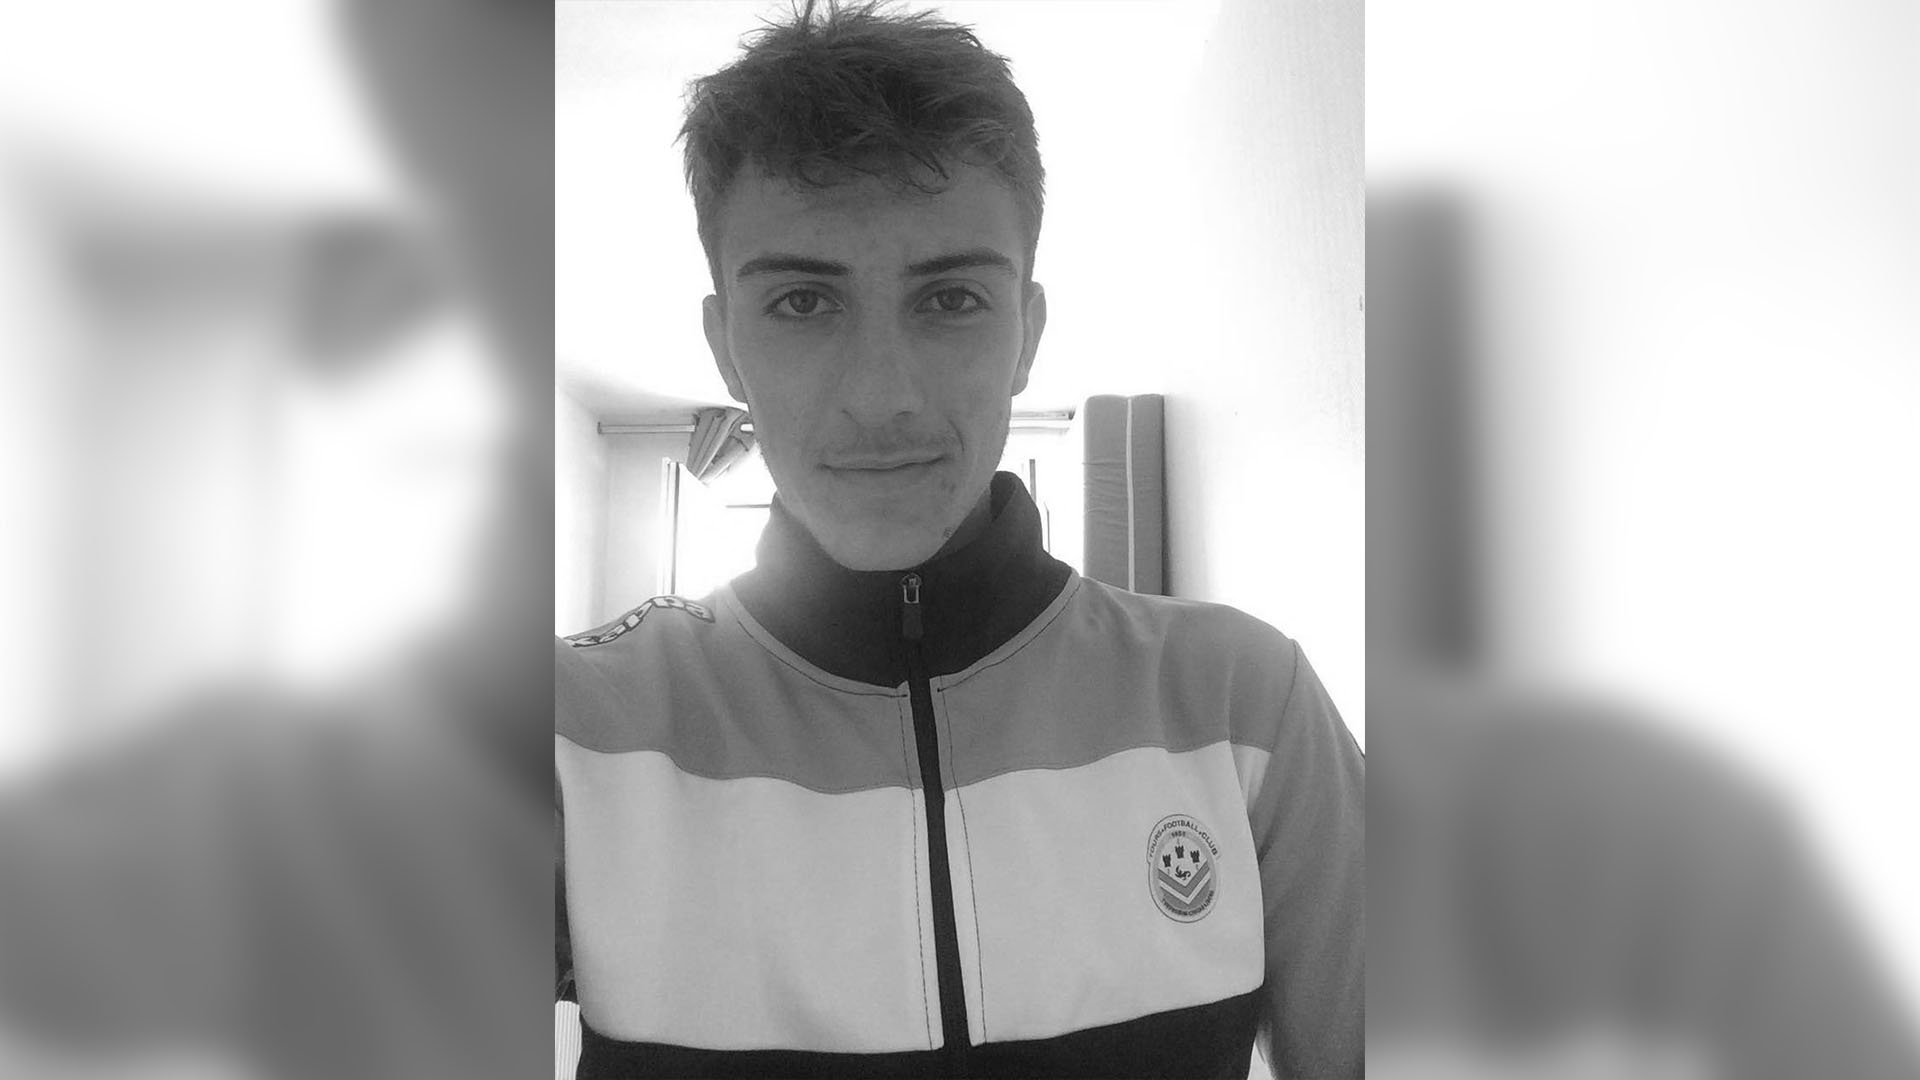 FC Tours defender Thomas Rodriguez dies aged 18, Ligue 2 club announces